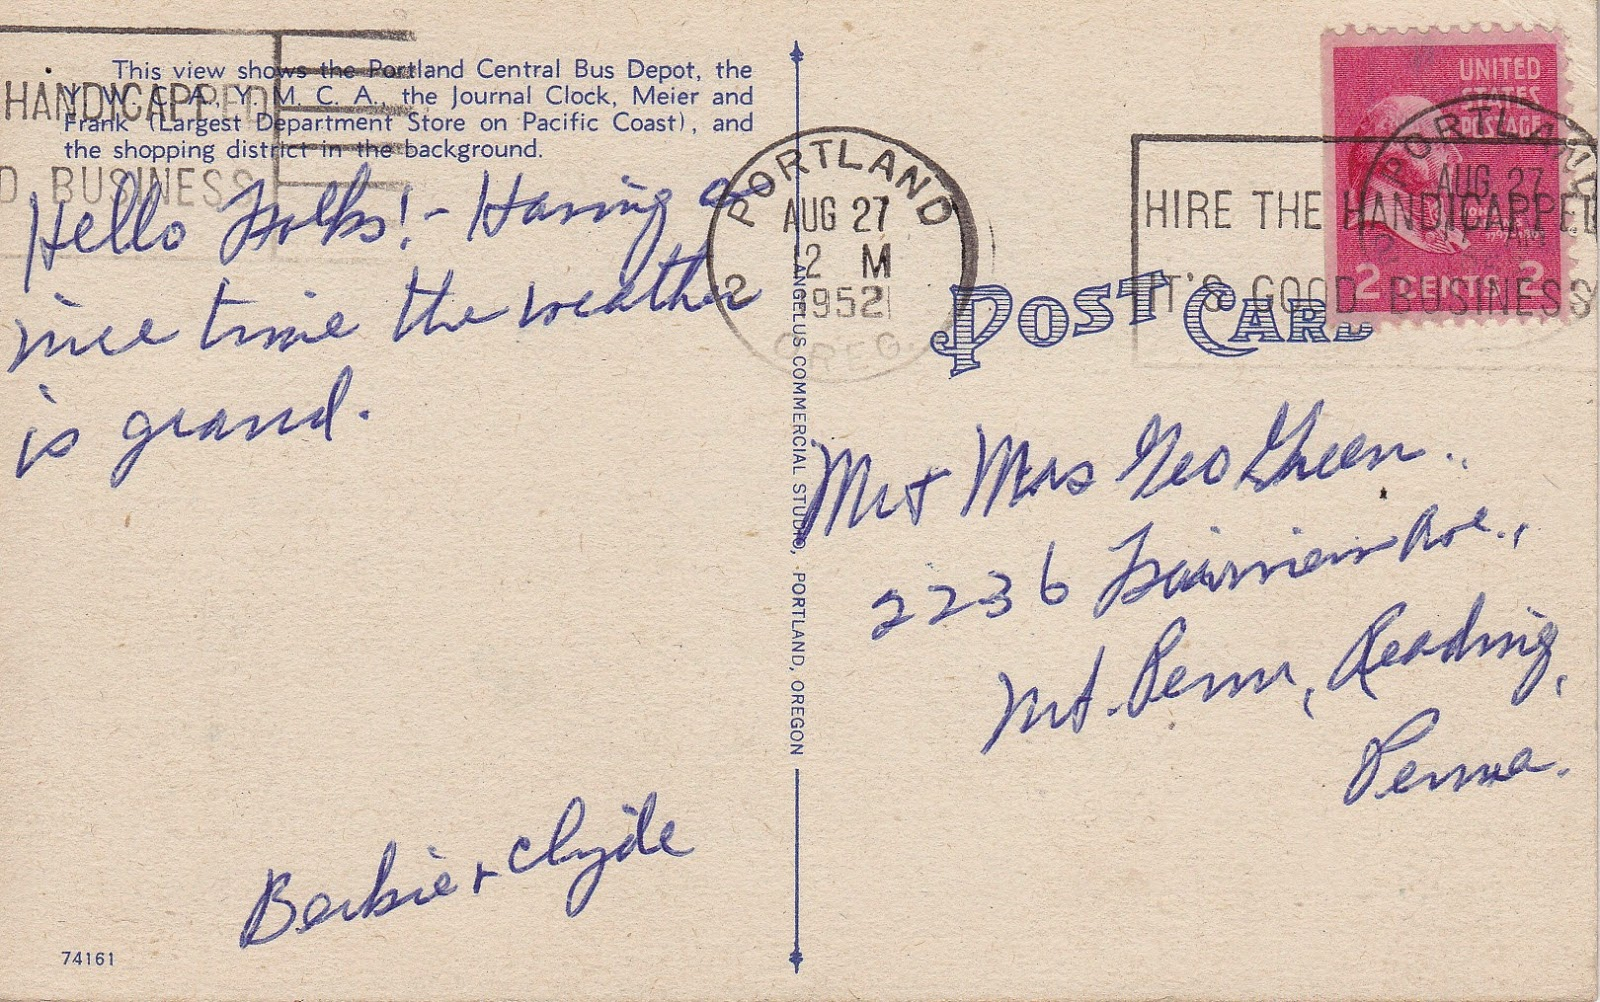 Portland Central Bus Depot, Portland, Oregon Vintage Postcard (Back with Message)